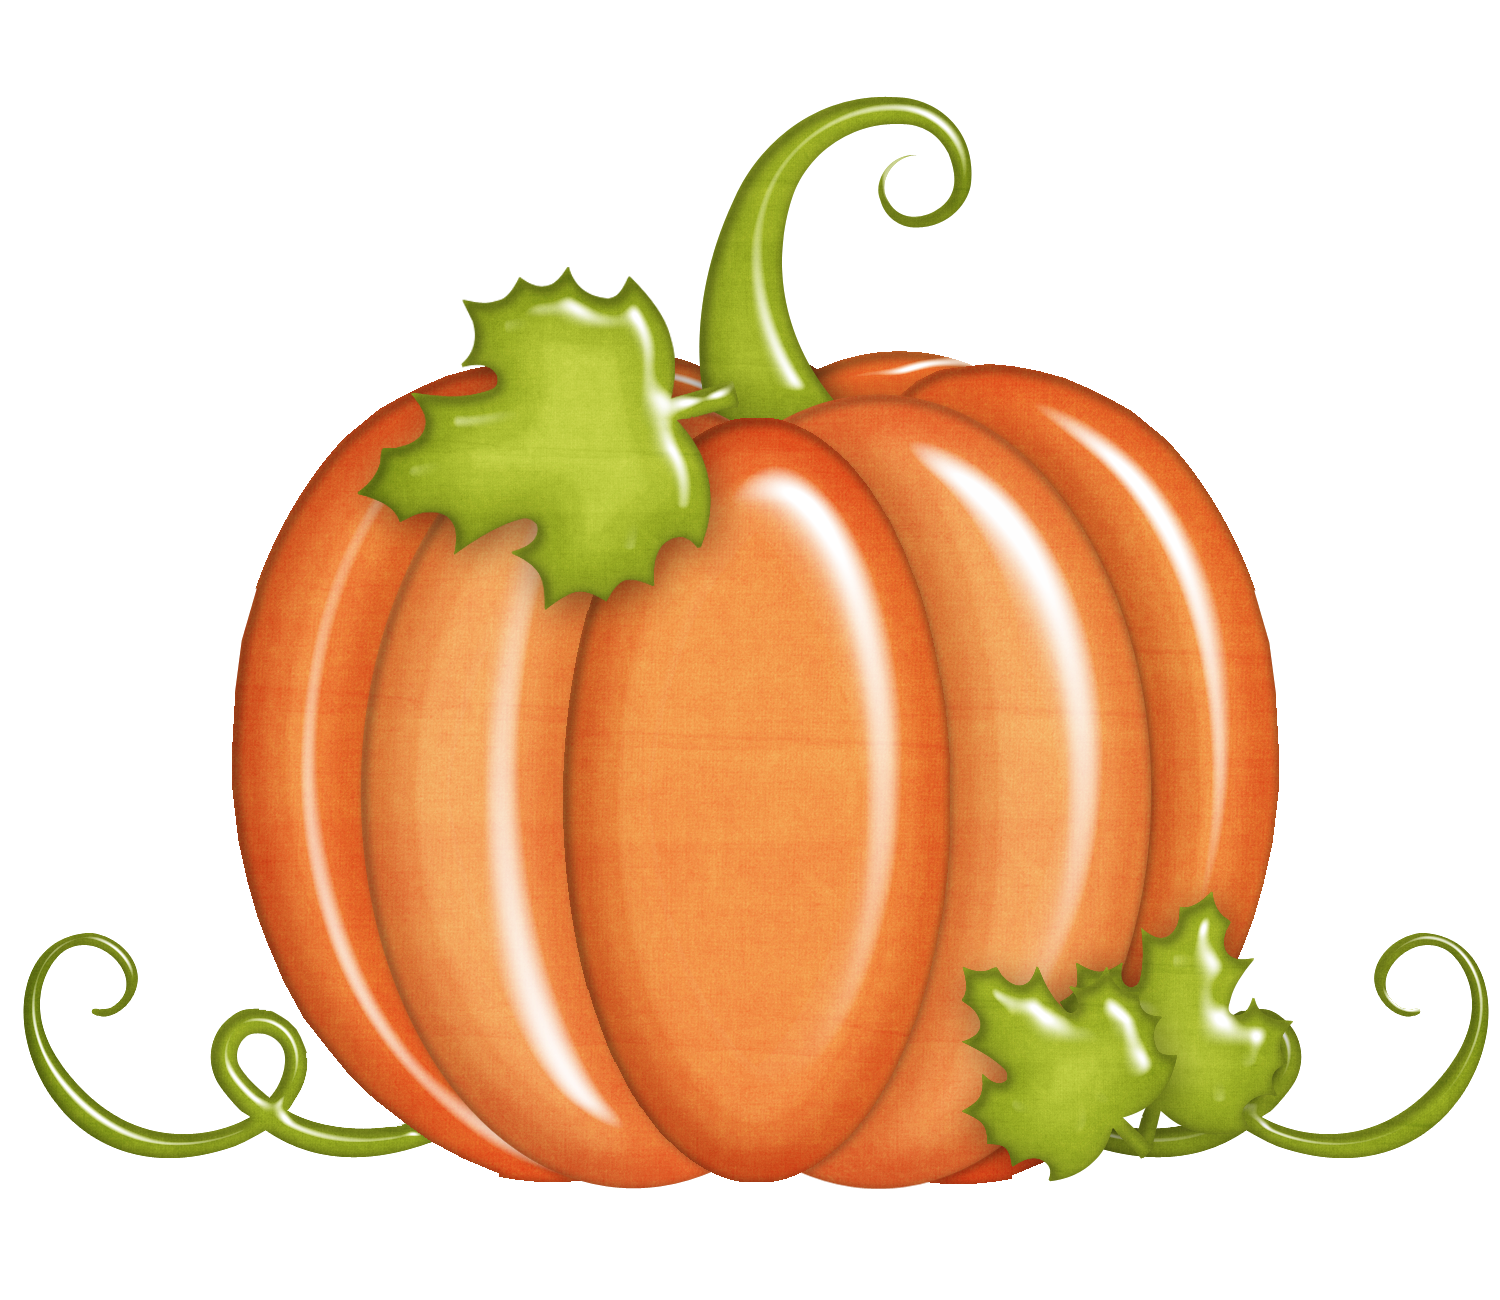 Pumpkin with cross clipart clipart black and white download Free Pumpkin Cross Cliparts, Download Free Clip Art, Free Clip Art ... clipart black and white download